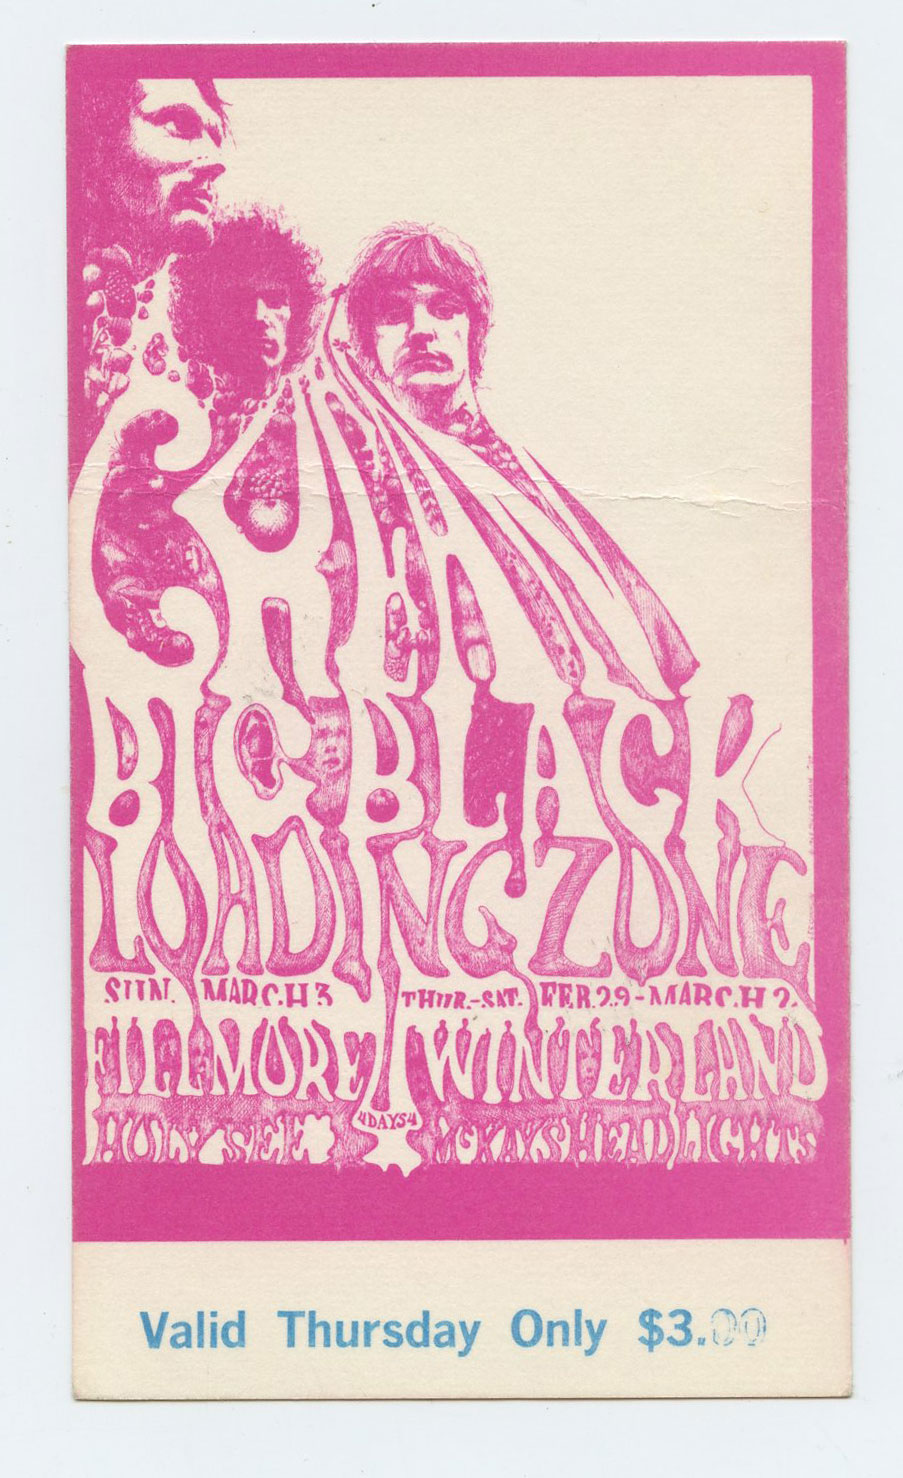 BG 109 Ticket Cream Big Black Loading Zone 1968 Feb 29